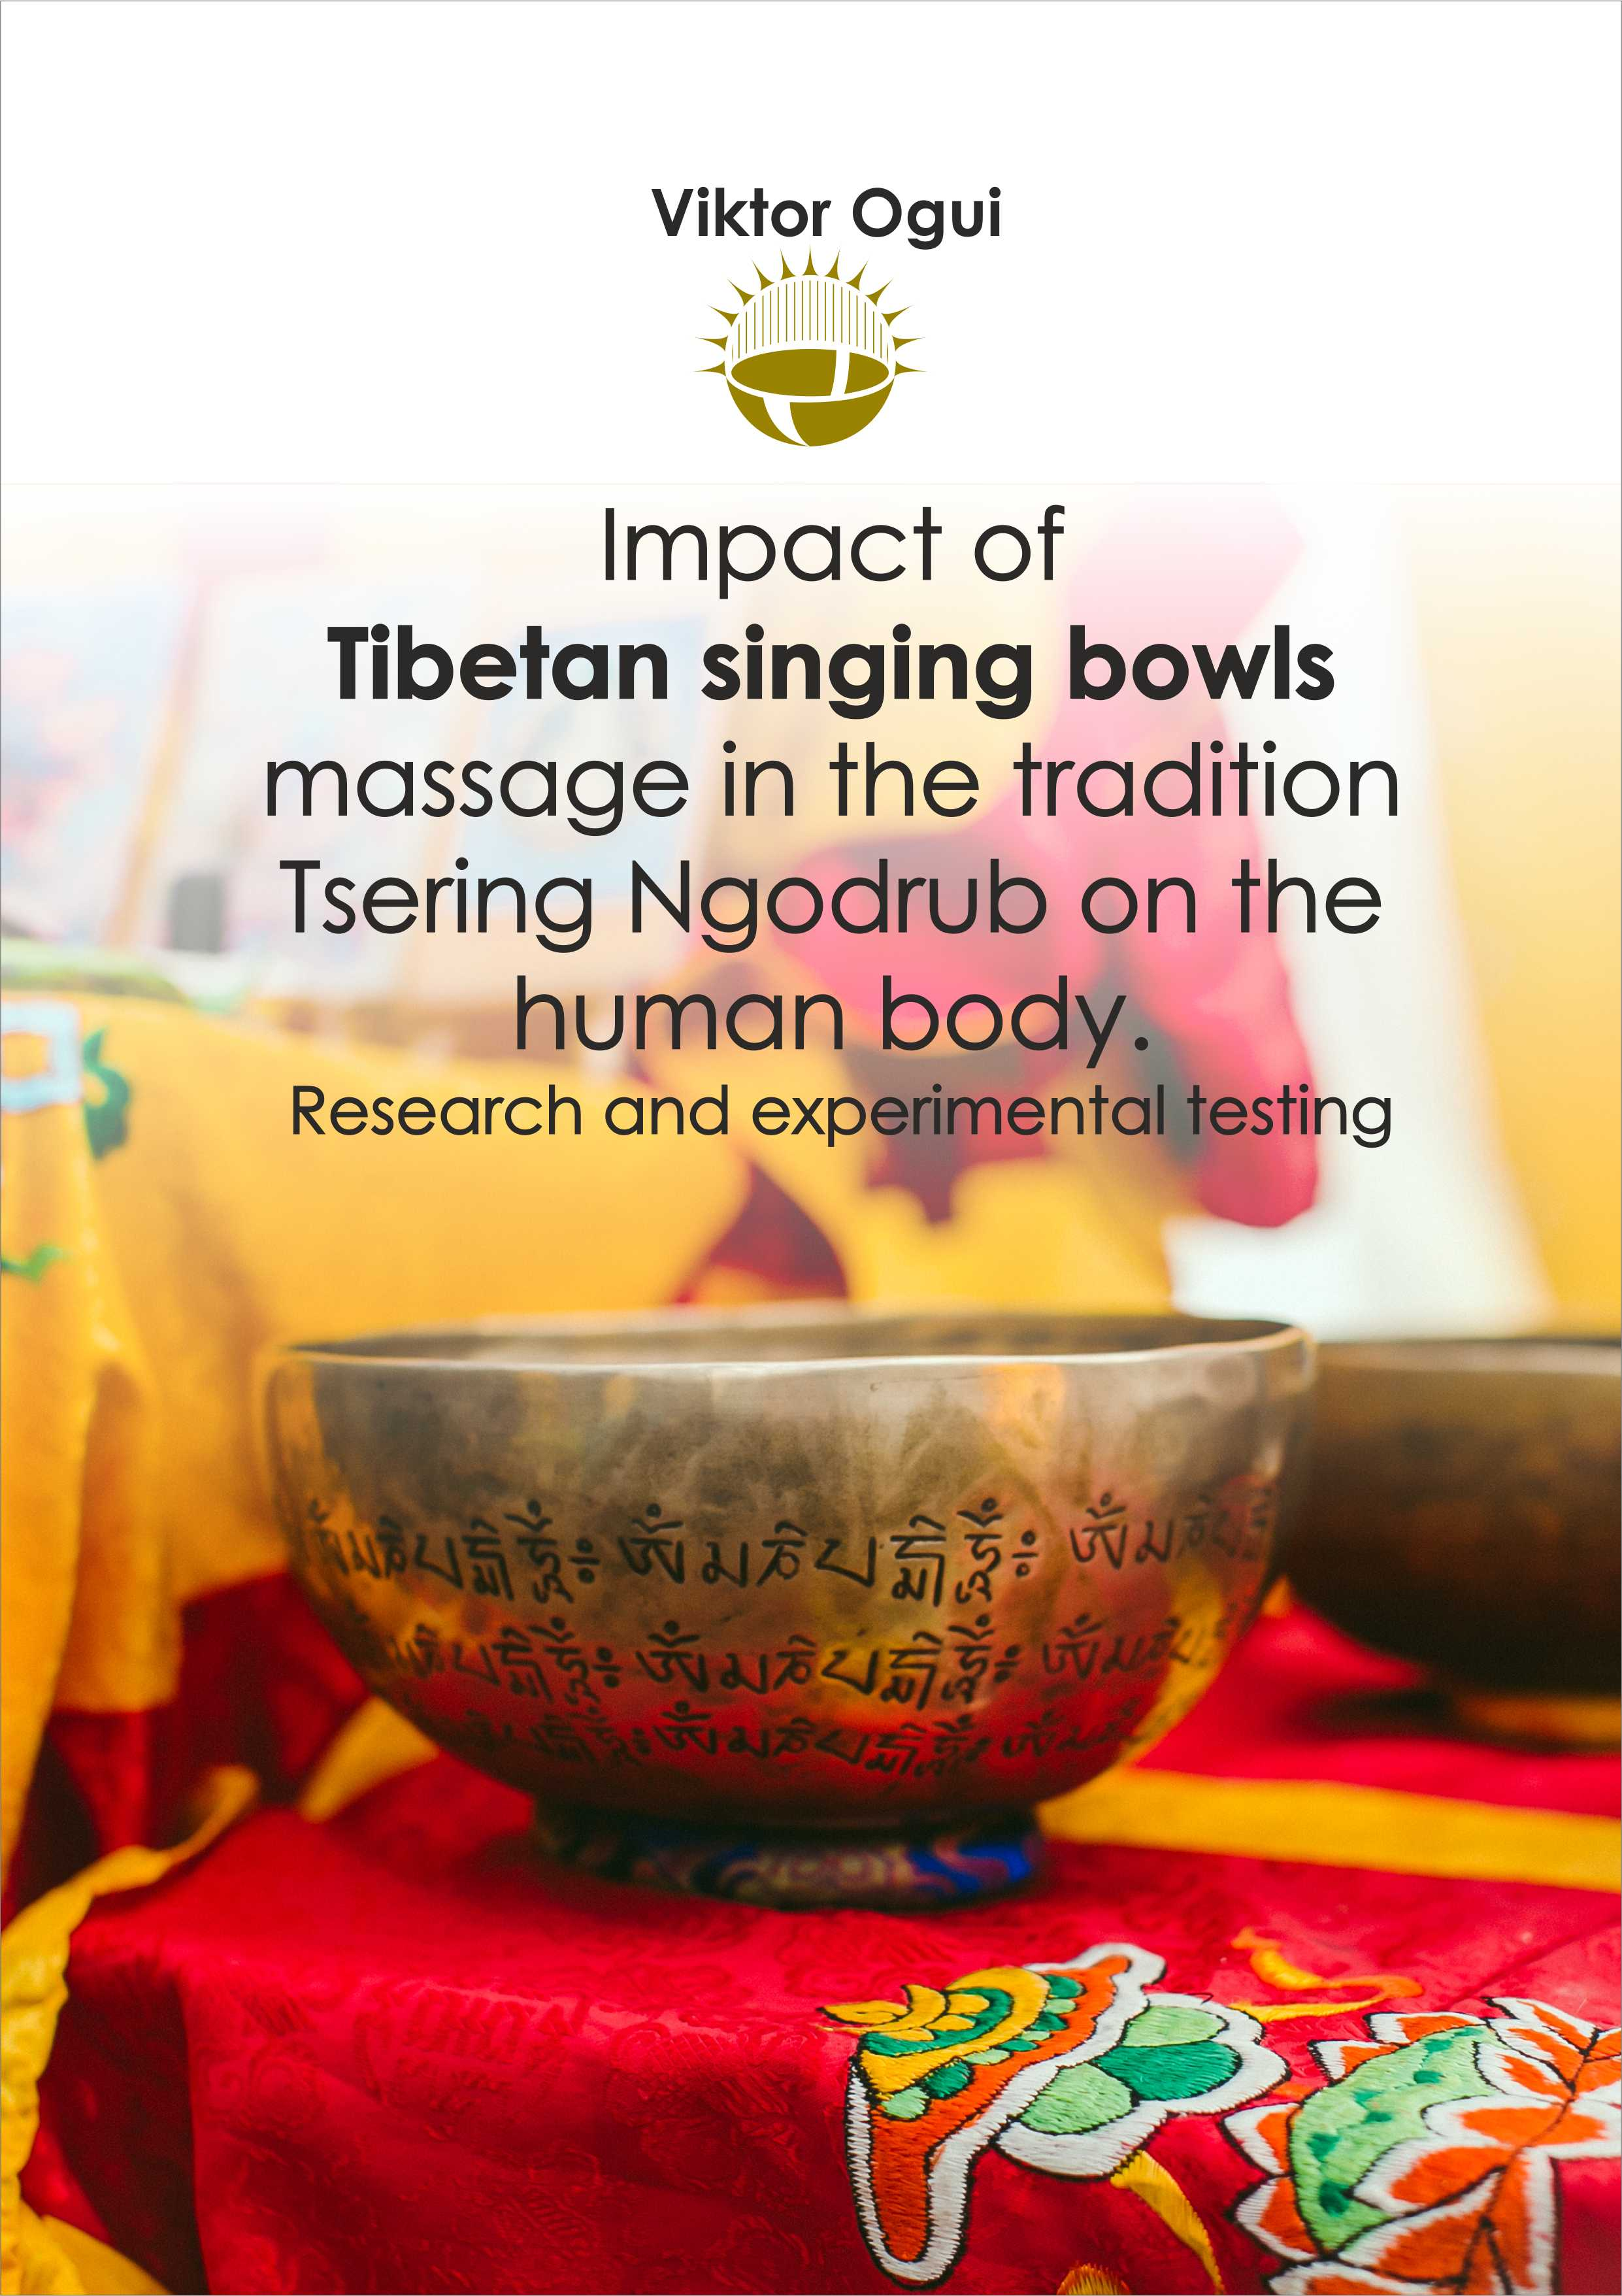 Viktor Ogui: Impact of Tibetan singing bowls massage in the tradition Tsering Ngodrub on the human body: Research and experimental testing